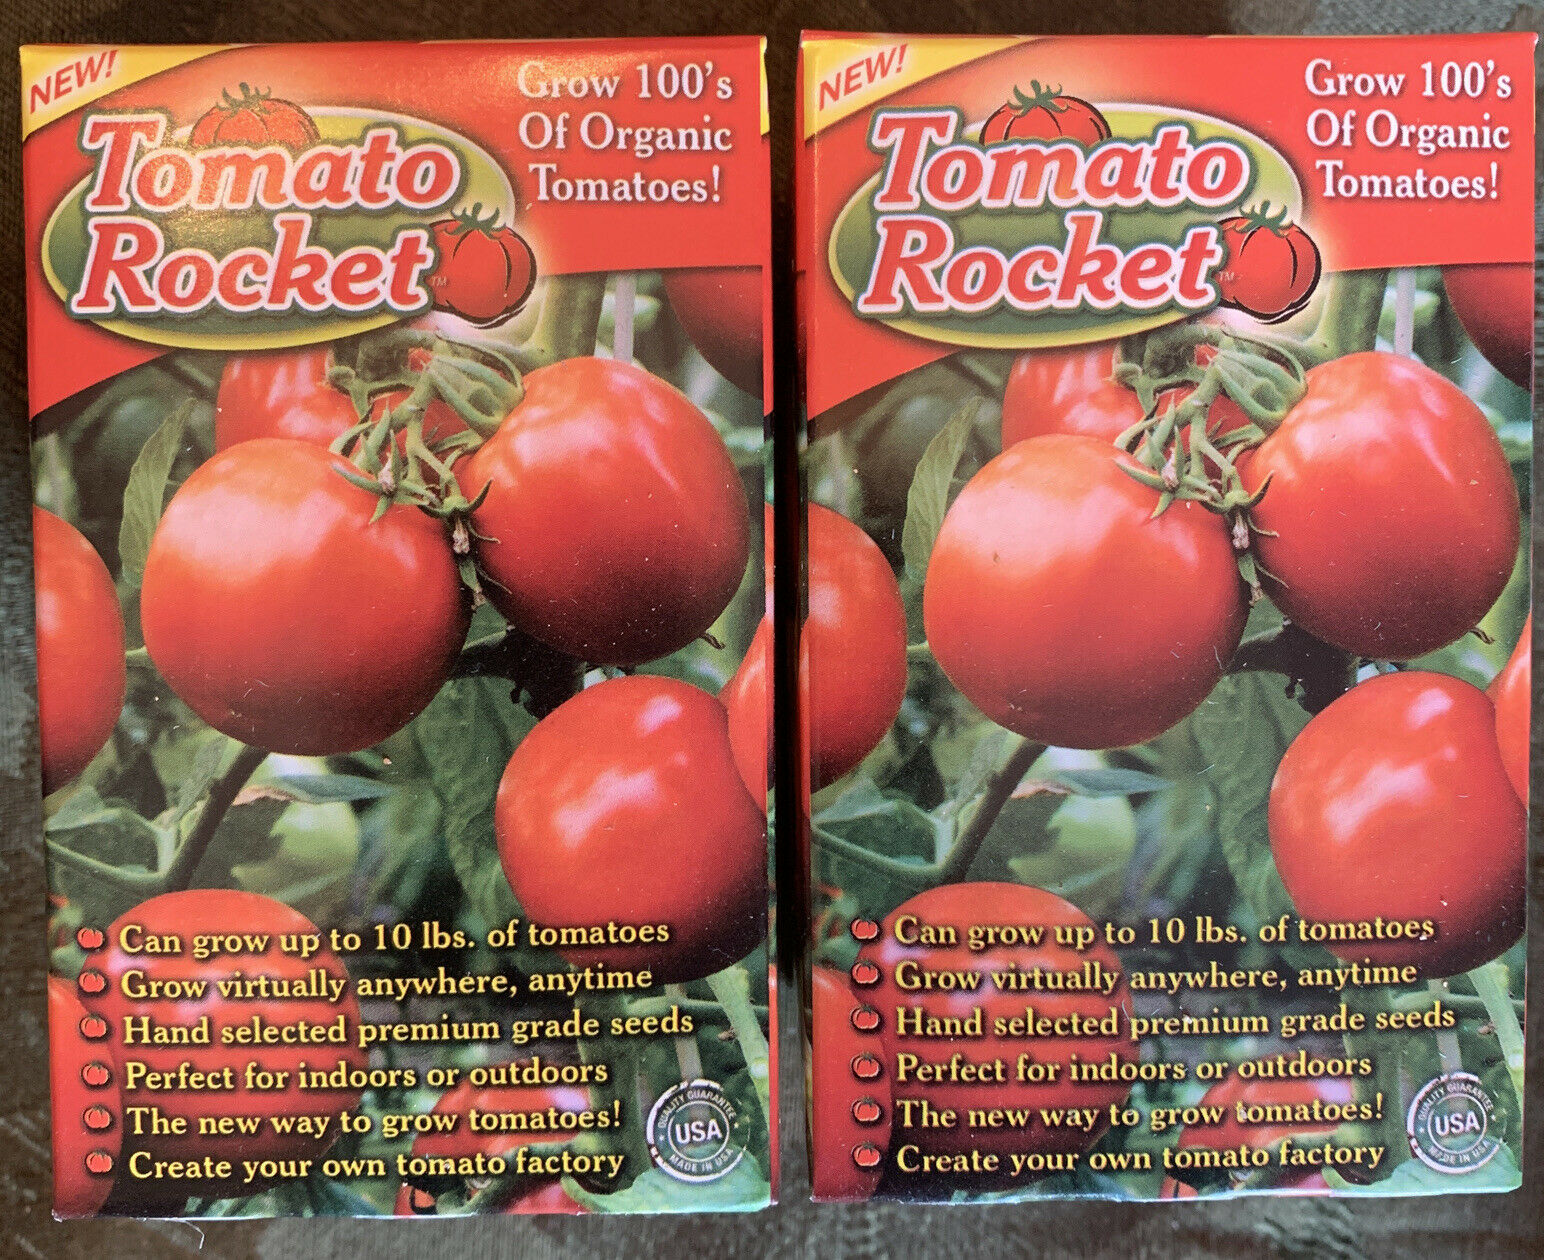 2 Pack Tomato Rocket As Seen On TV, Grow Organic Tomatoes